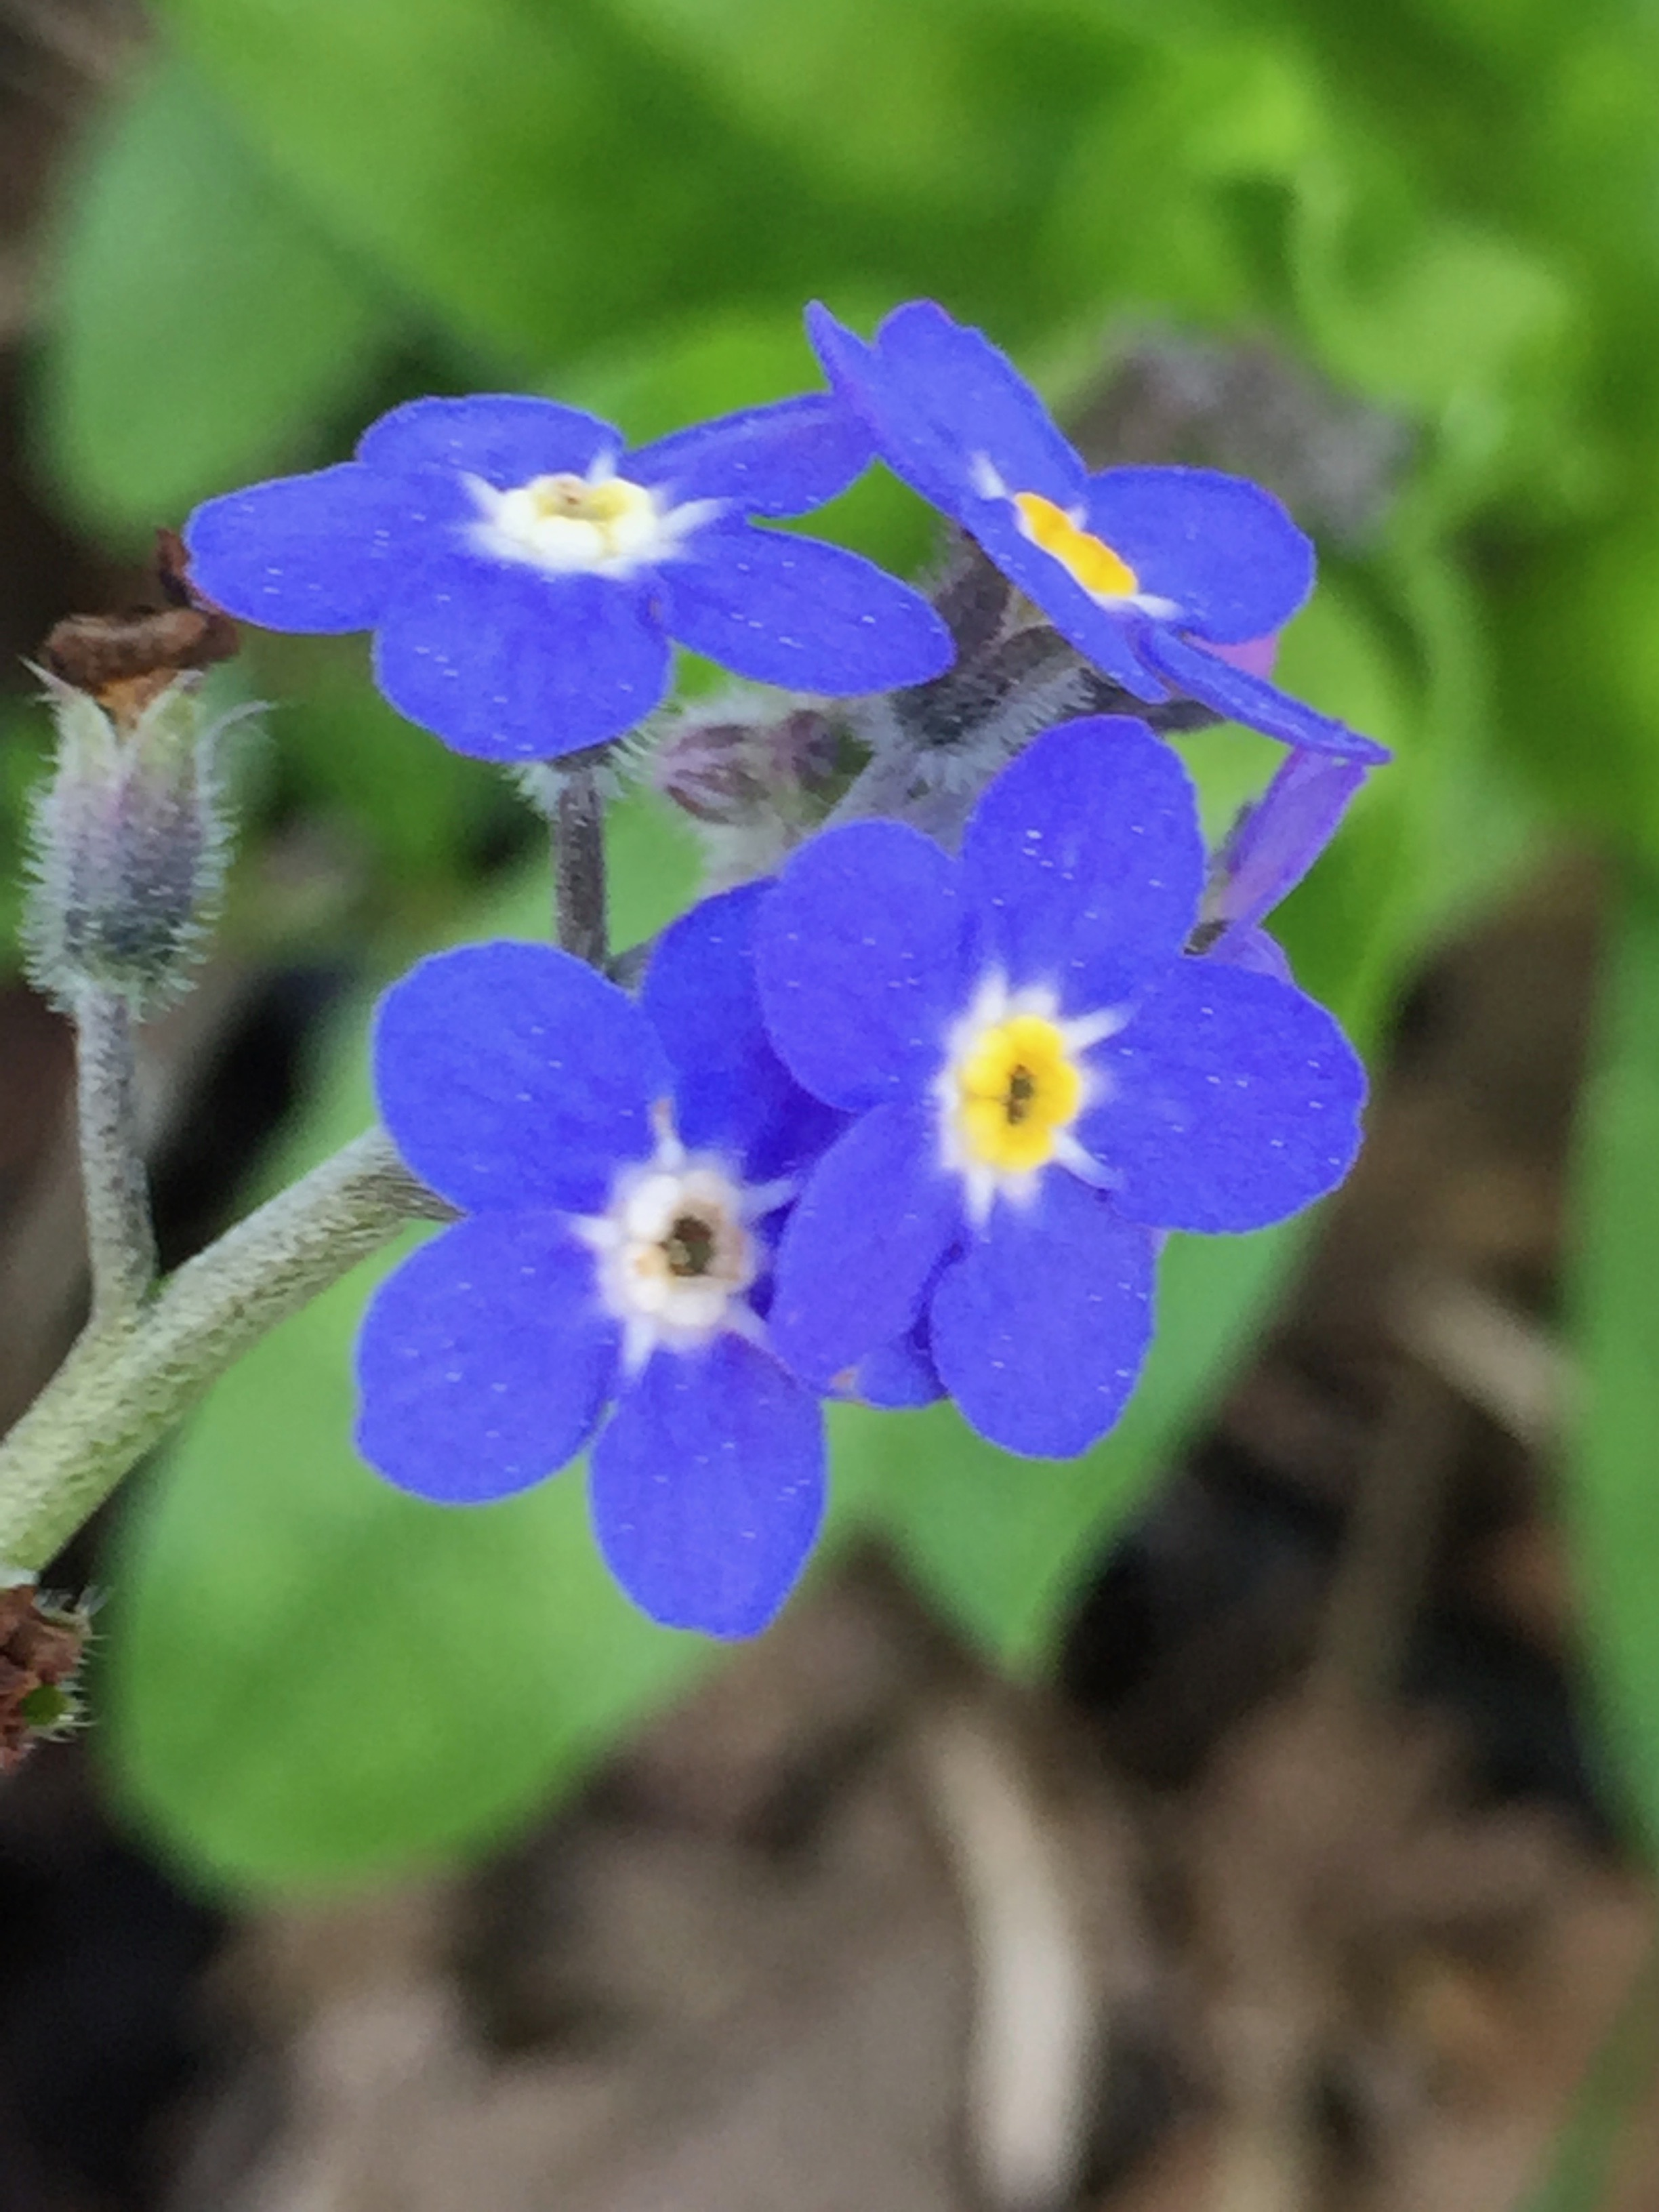 I have Chinese Forget-me-Not all over the garden, as it readily self-sows. This is  Cynoglossum  and is also often called Chinese Hound's Tongue. I also have a purple variety growing - check out the next photo -